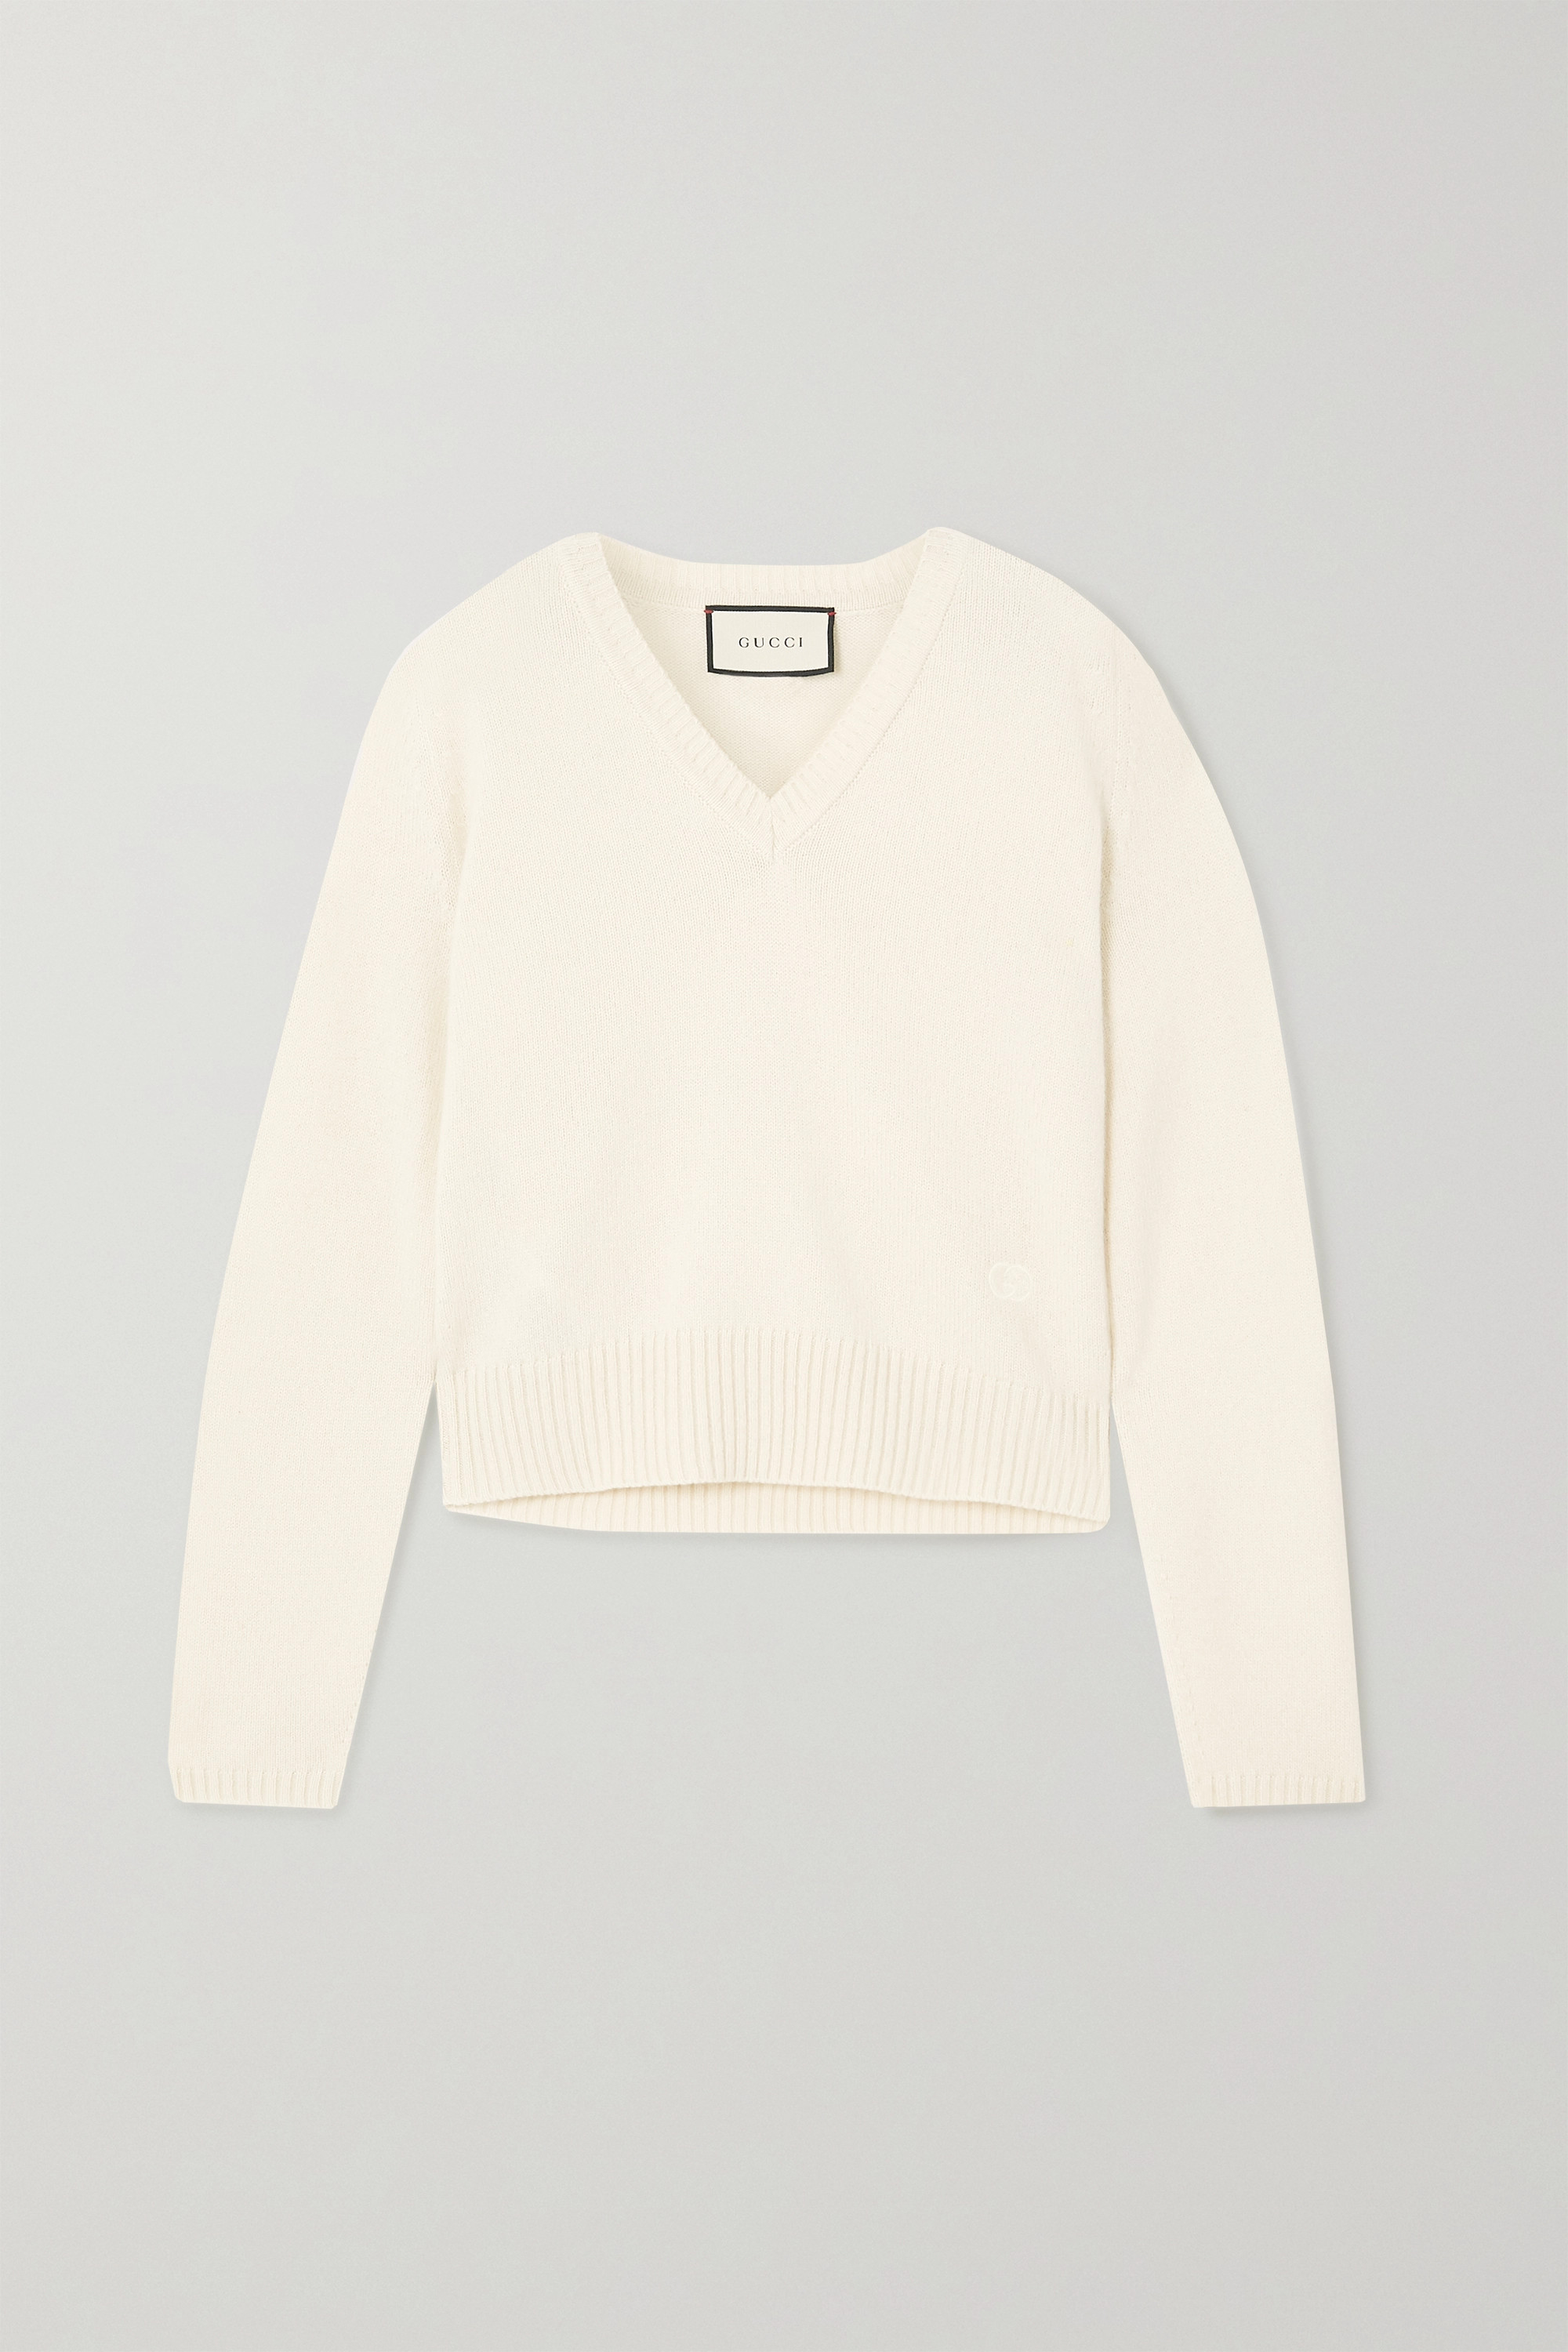 Gucci Embroidered cashmere sweater